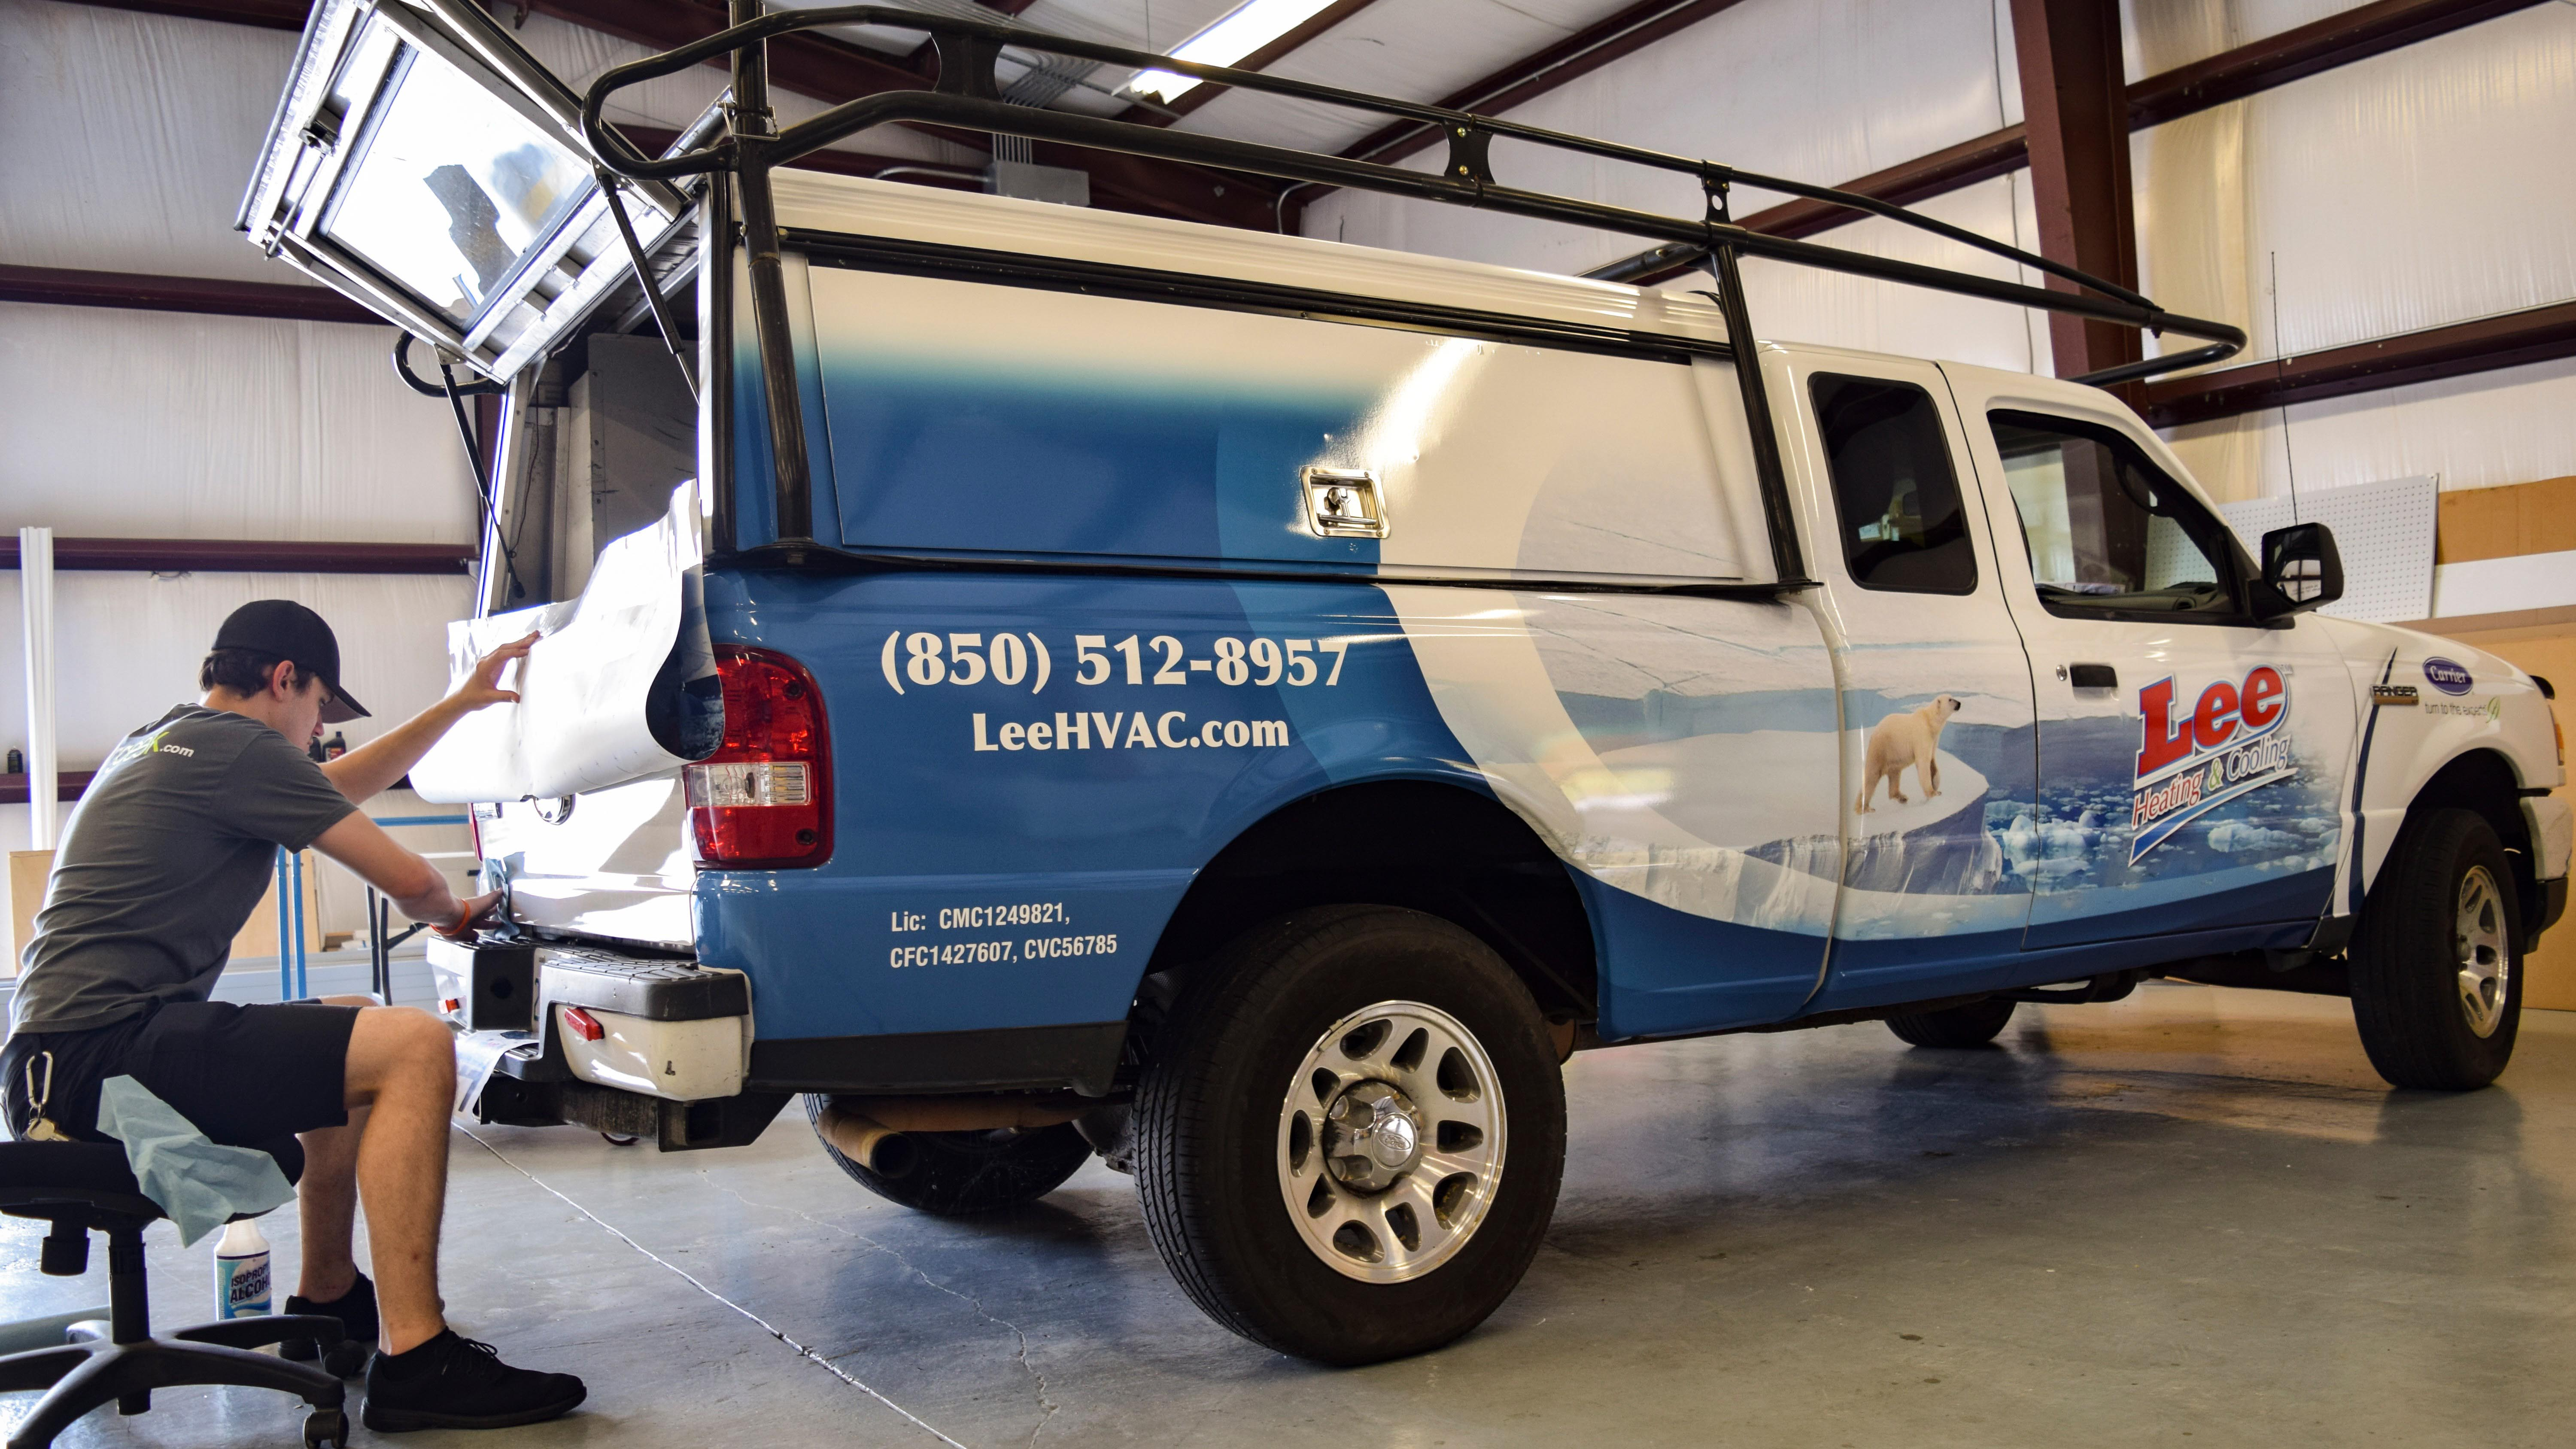 Fleet wrap on utility truck - fleet graphics by signgeek